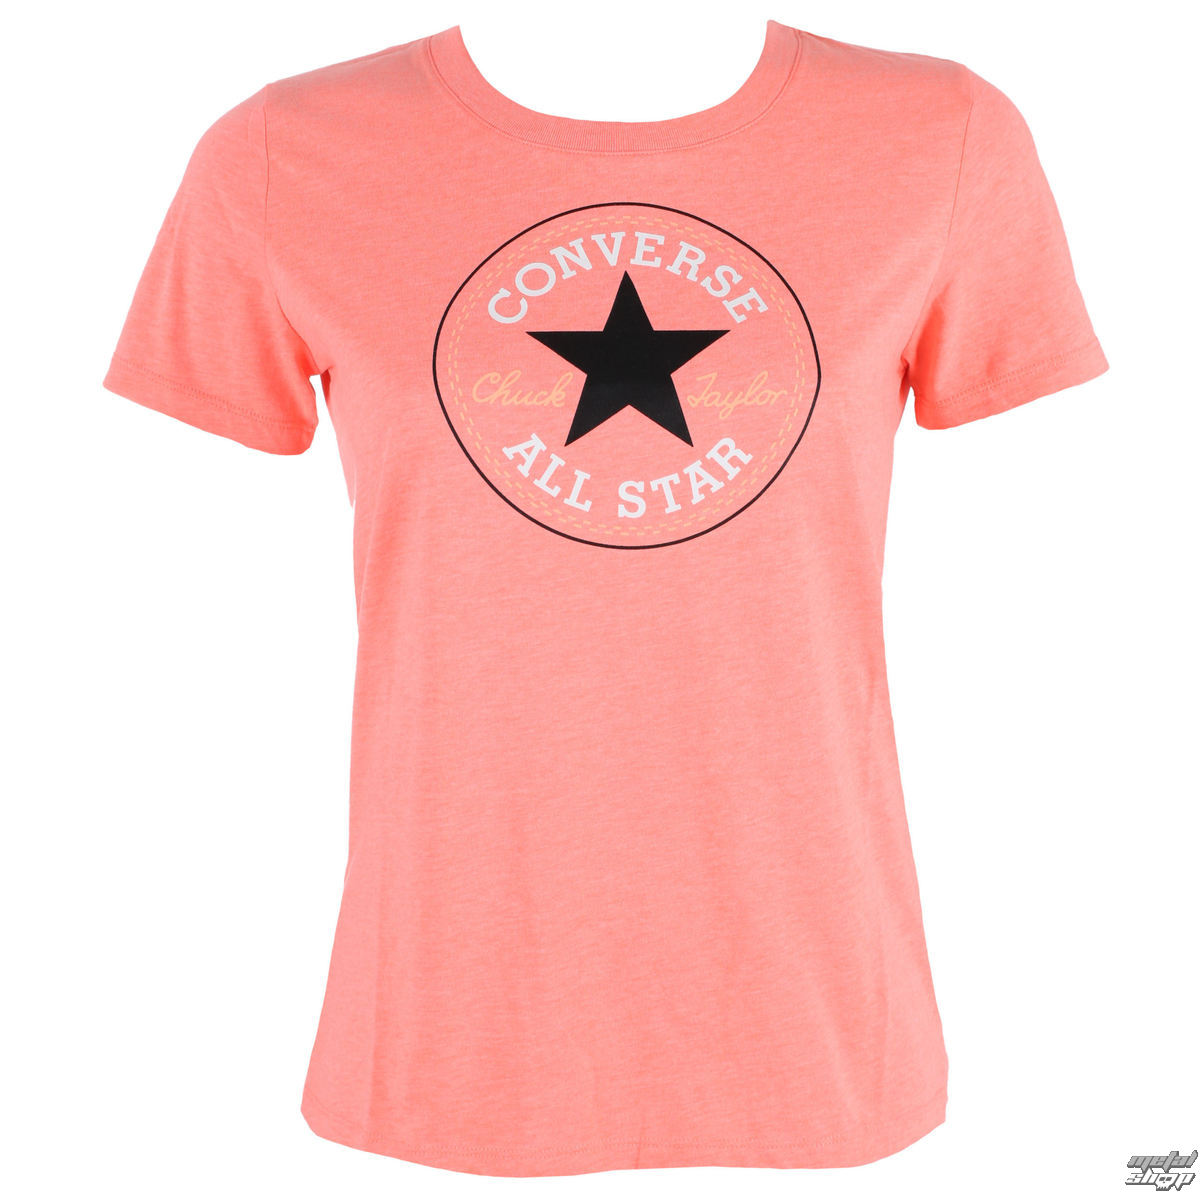 Damen Street T-Shirt - CORE SOLID CHUCK PATCH - CONVERSE